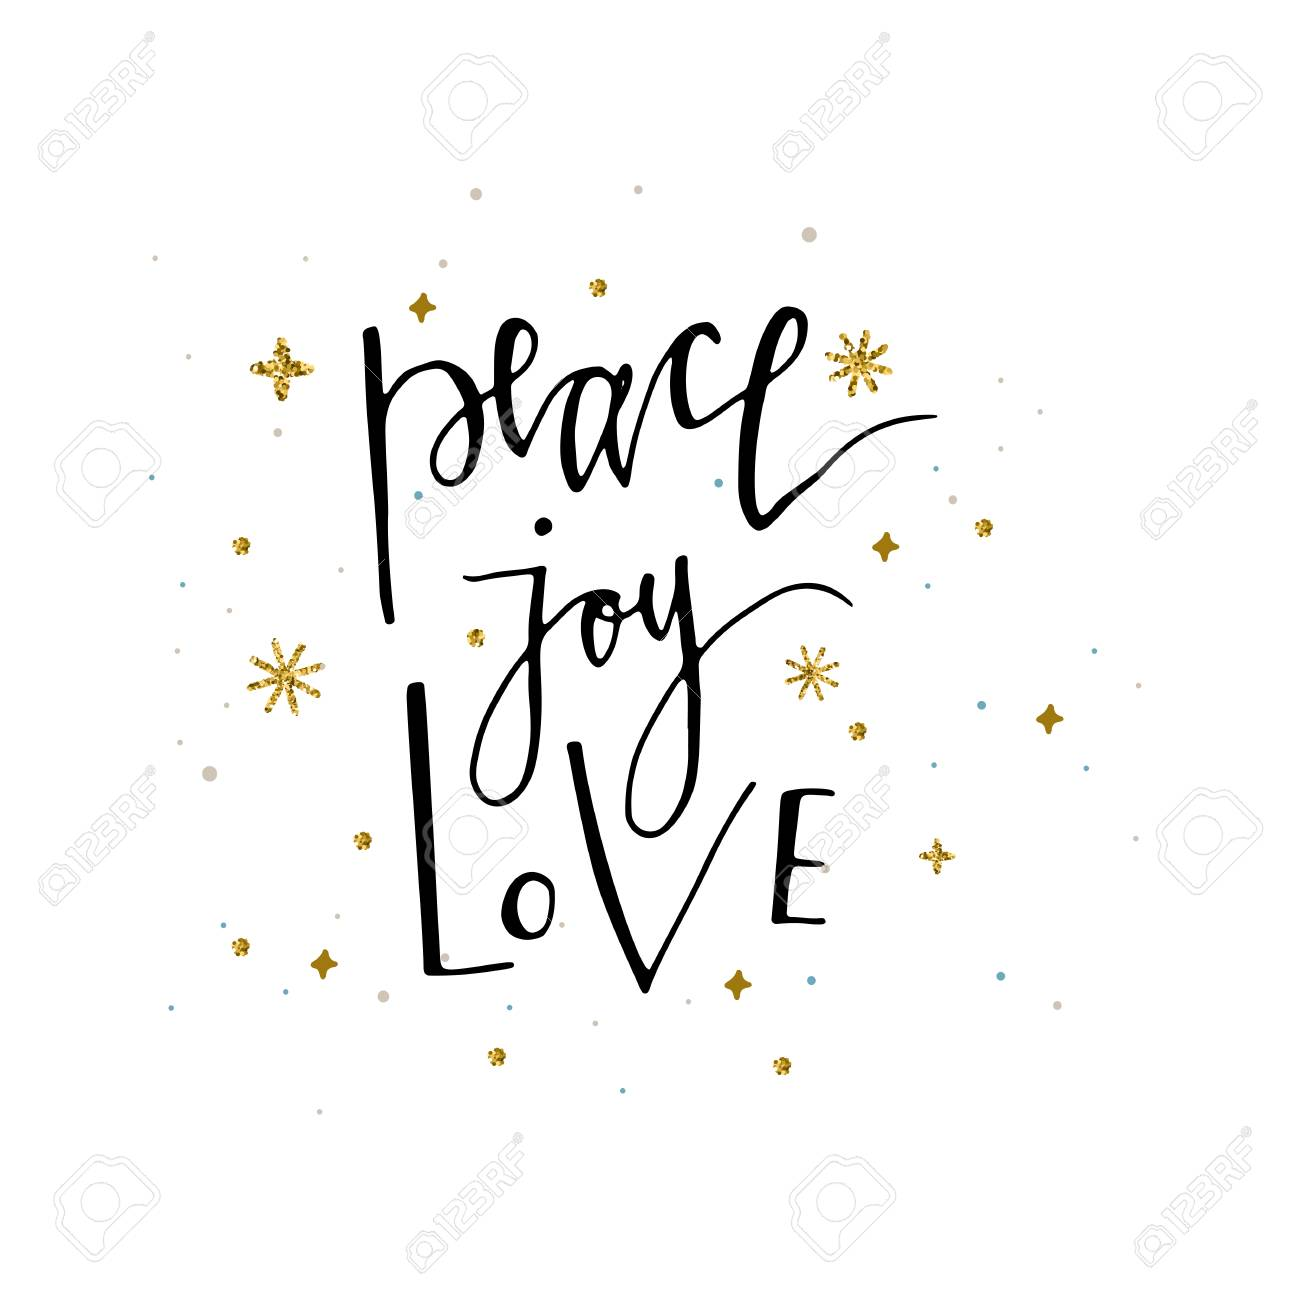 Peace Love Joy Quotes Love Peace Joy Text And Gold Glitter Snowflakes Holiday Greetings